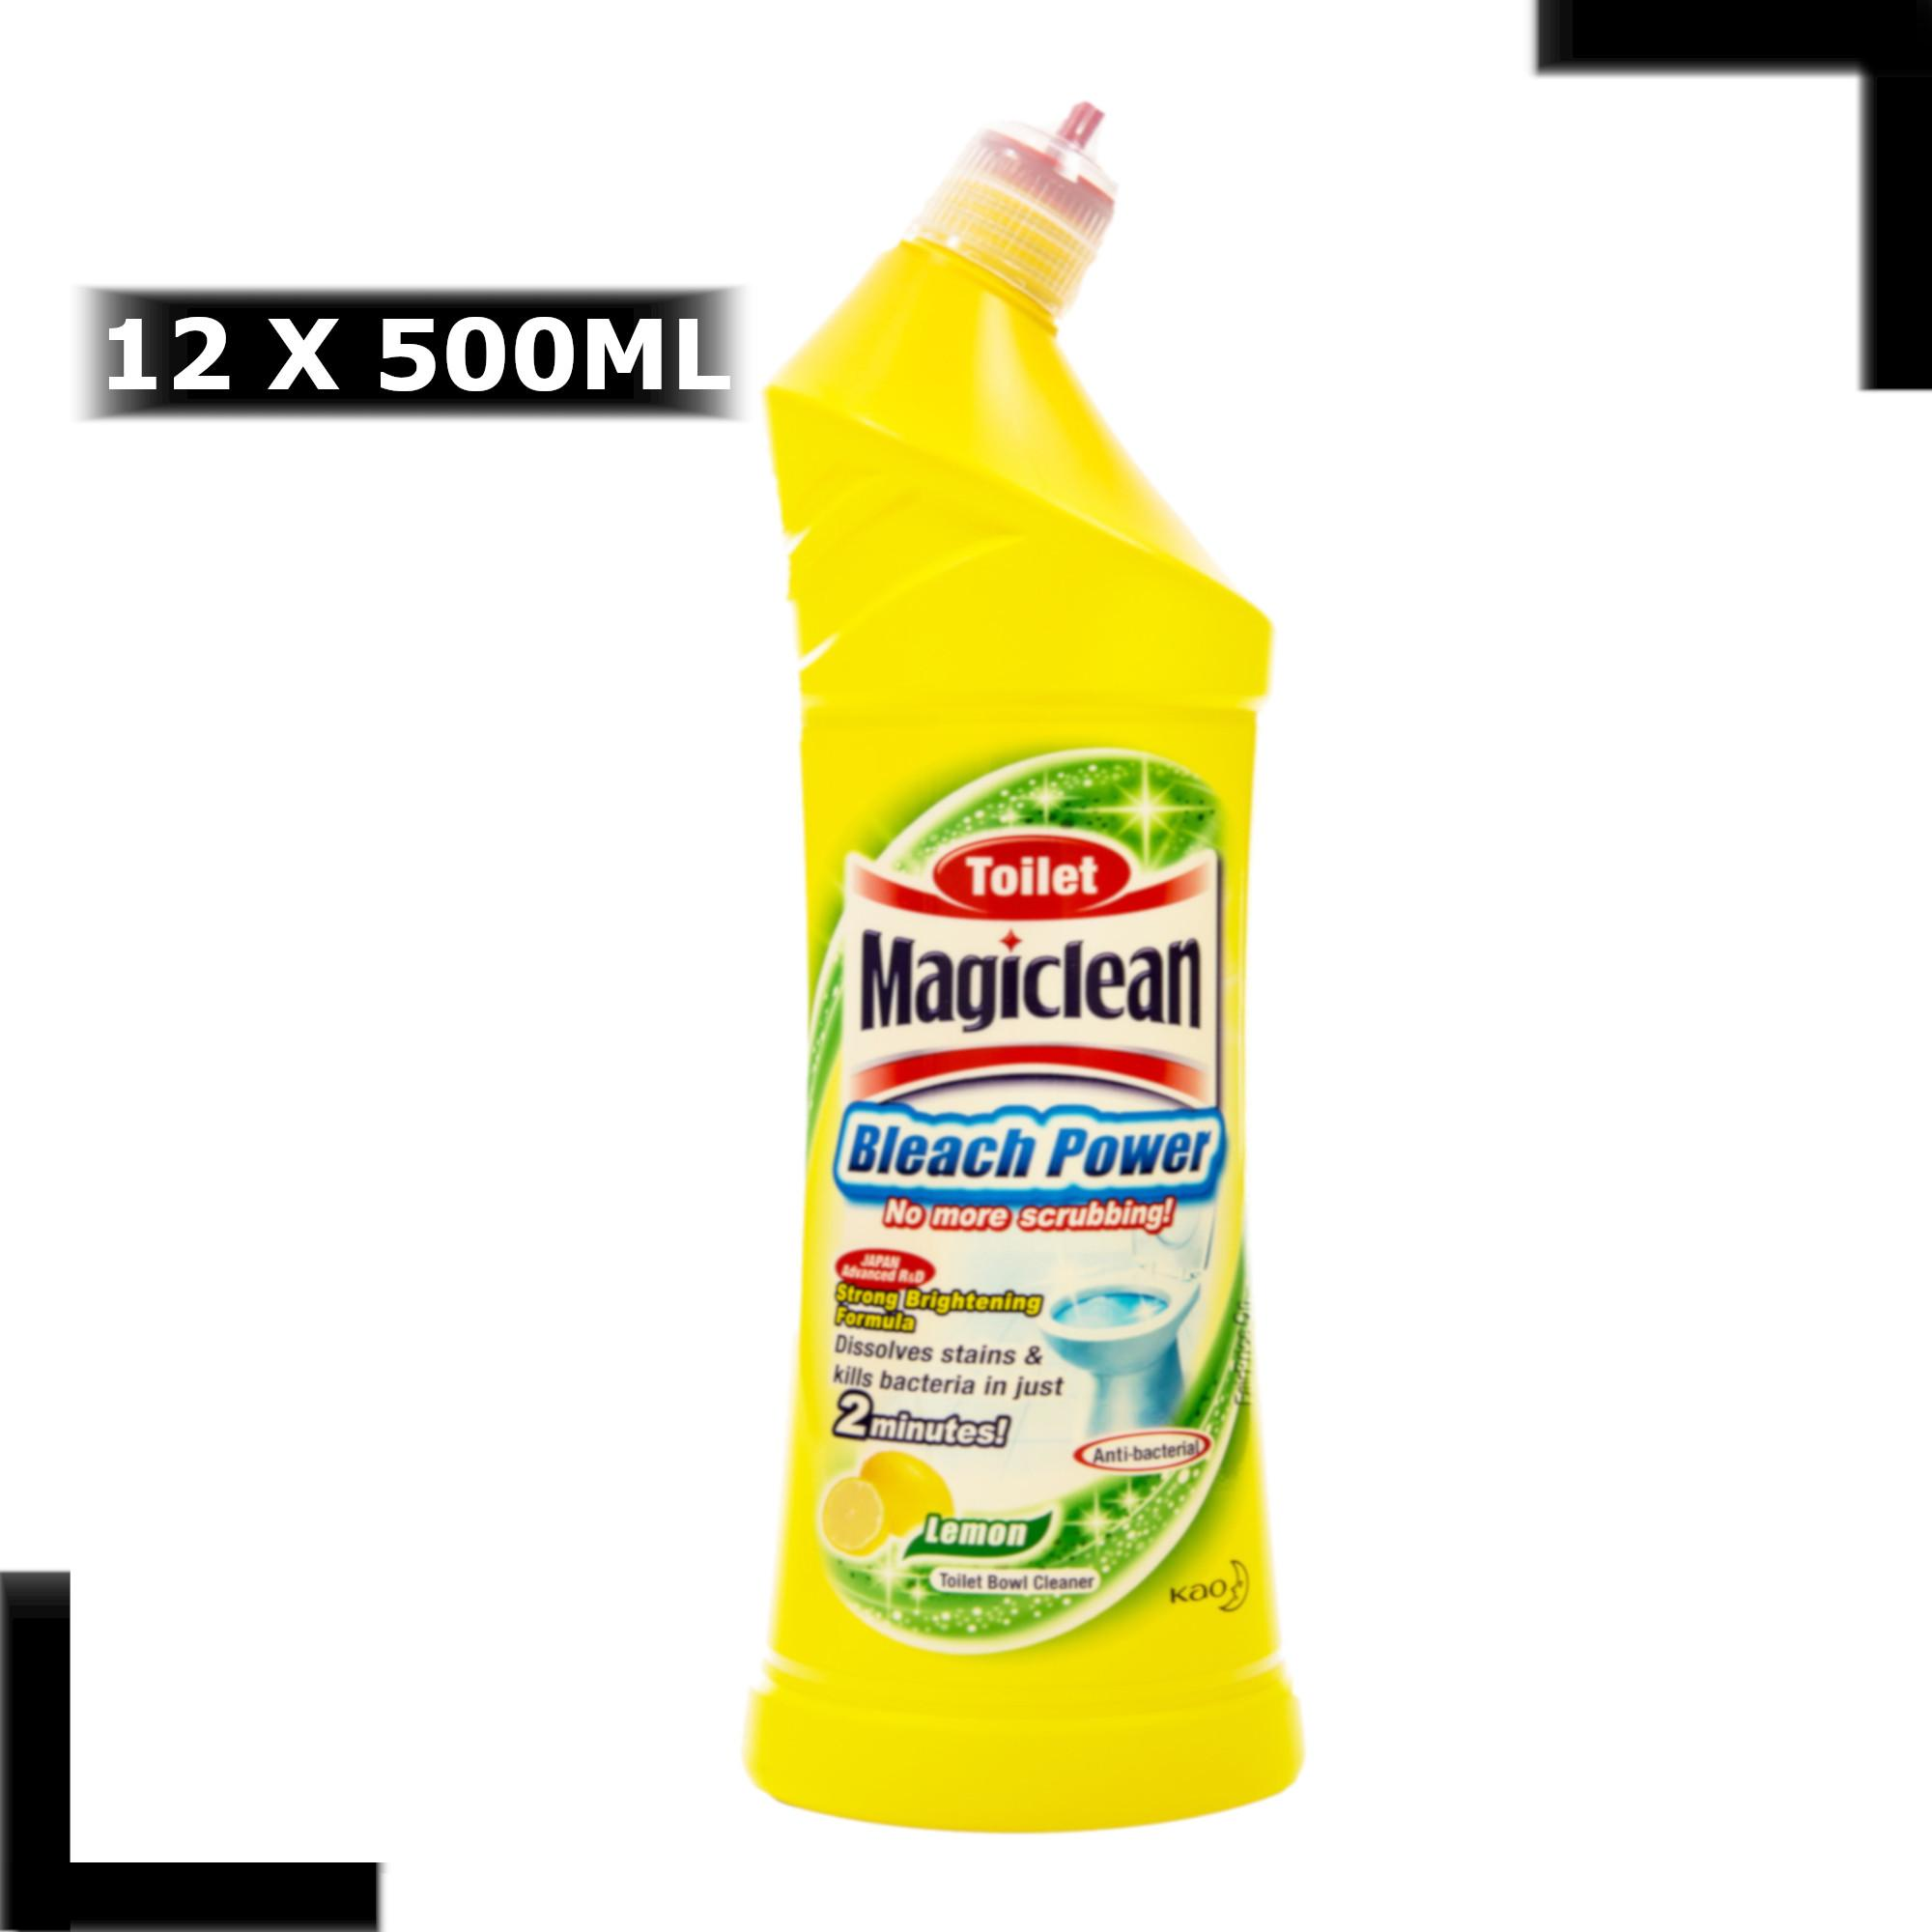 MAGICLEAN Toilet Bleach Power Cleaner - Lemon (12 X 500ML)